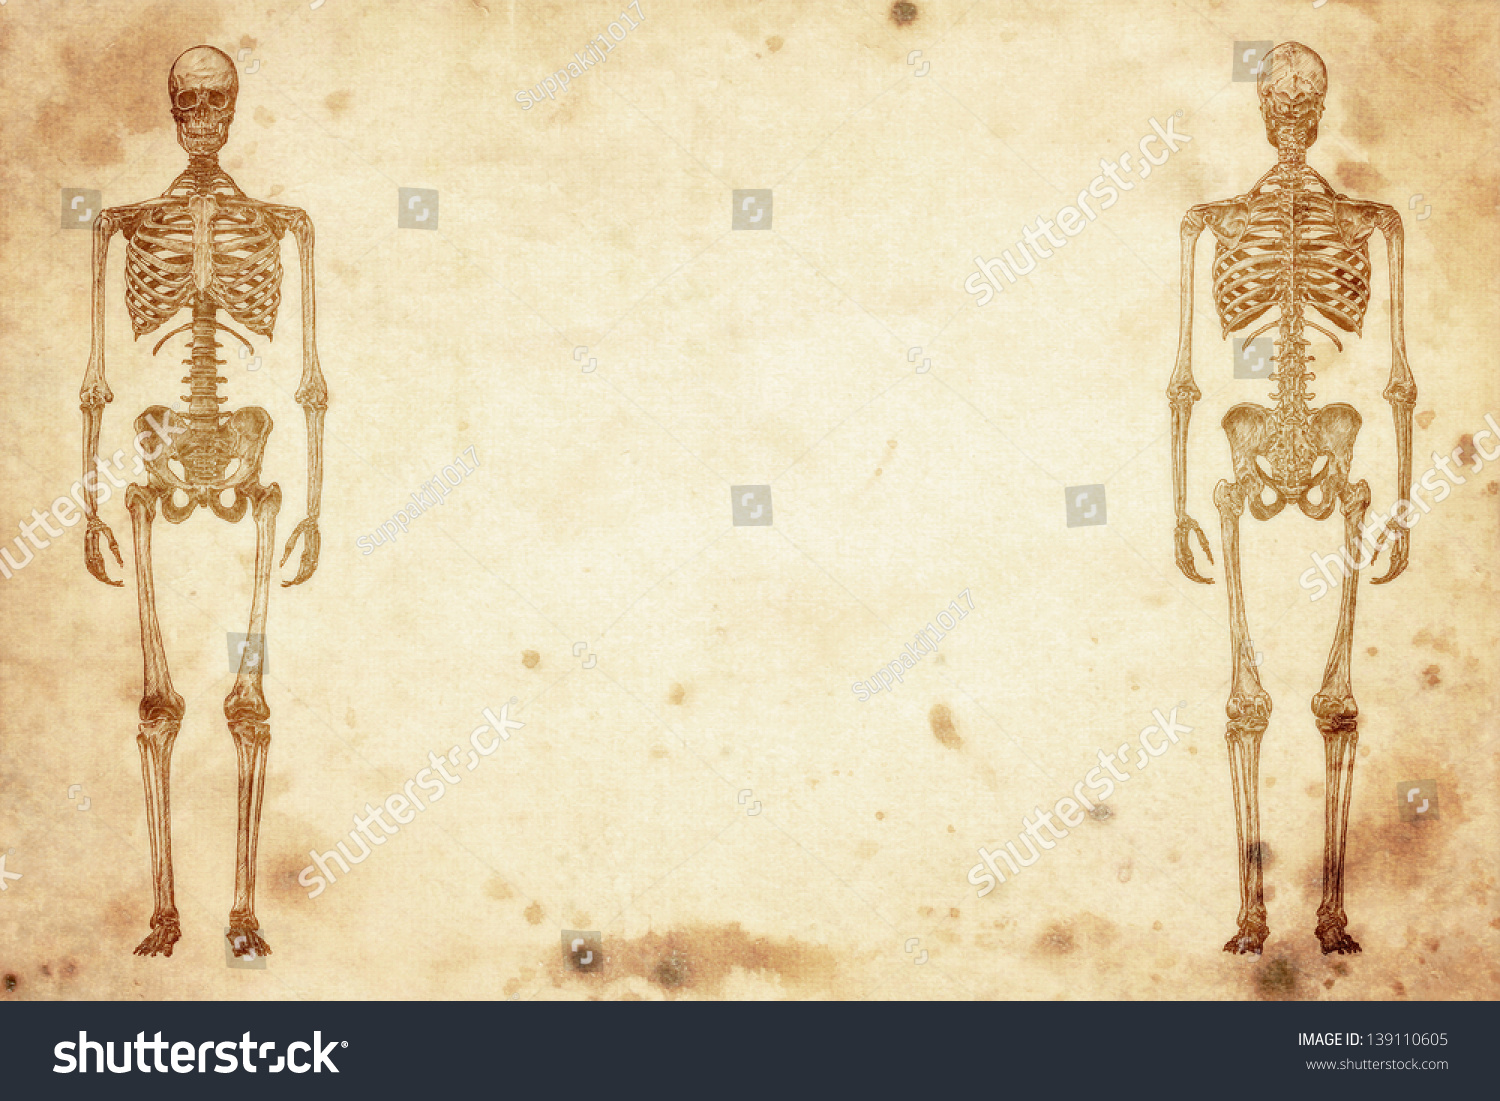 Royalty Free Stock Illustration Of Cursory Drawing Human Skeleton On